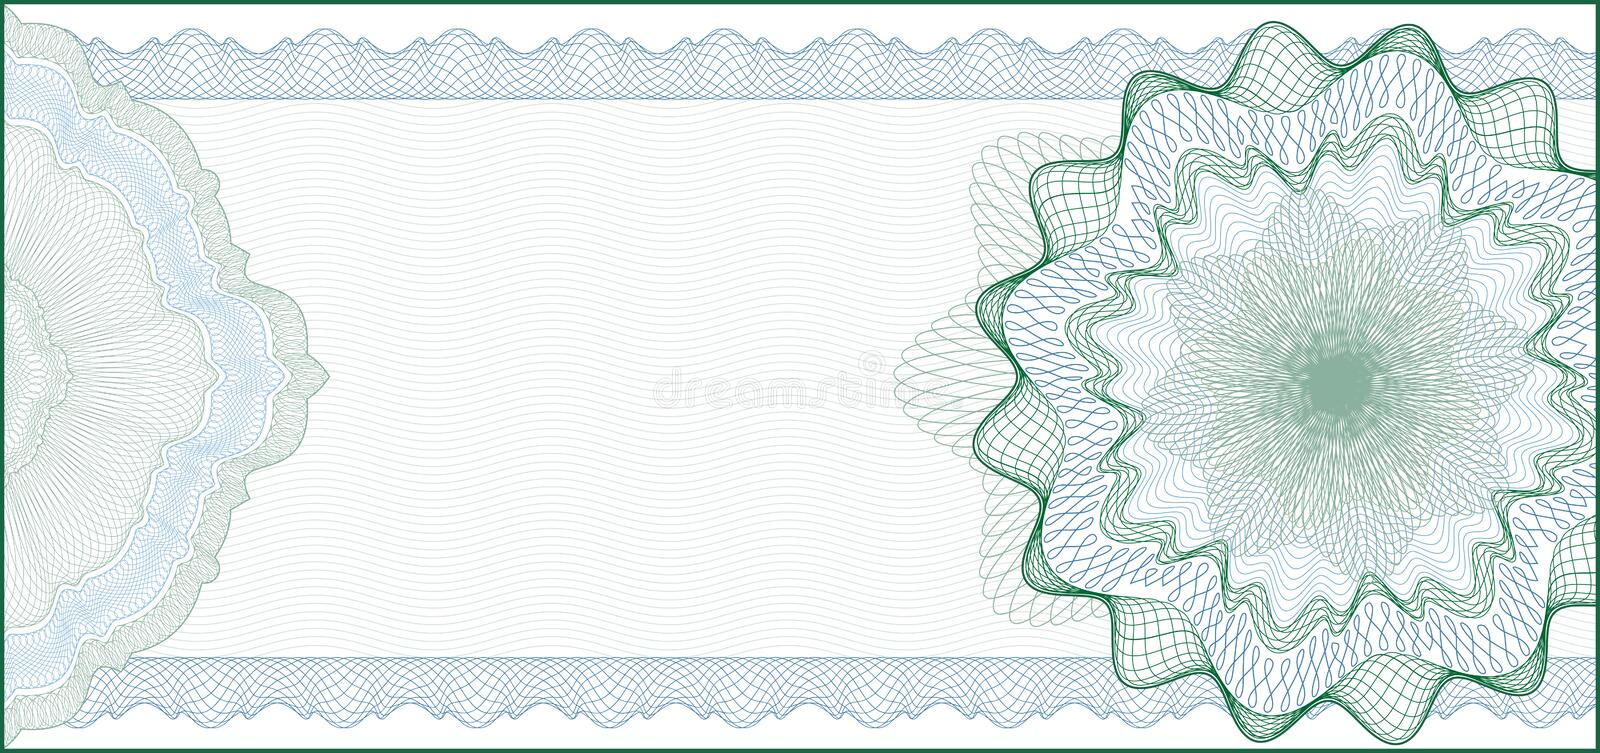 Background for Gift Certificate, Coupon stock illustration